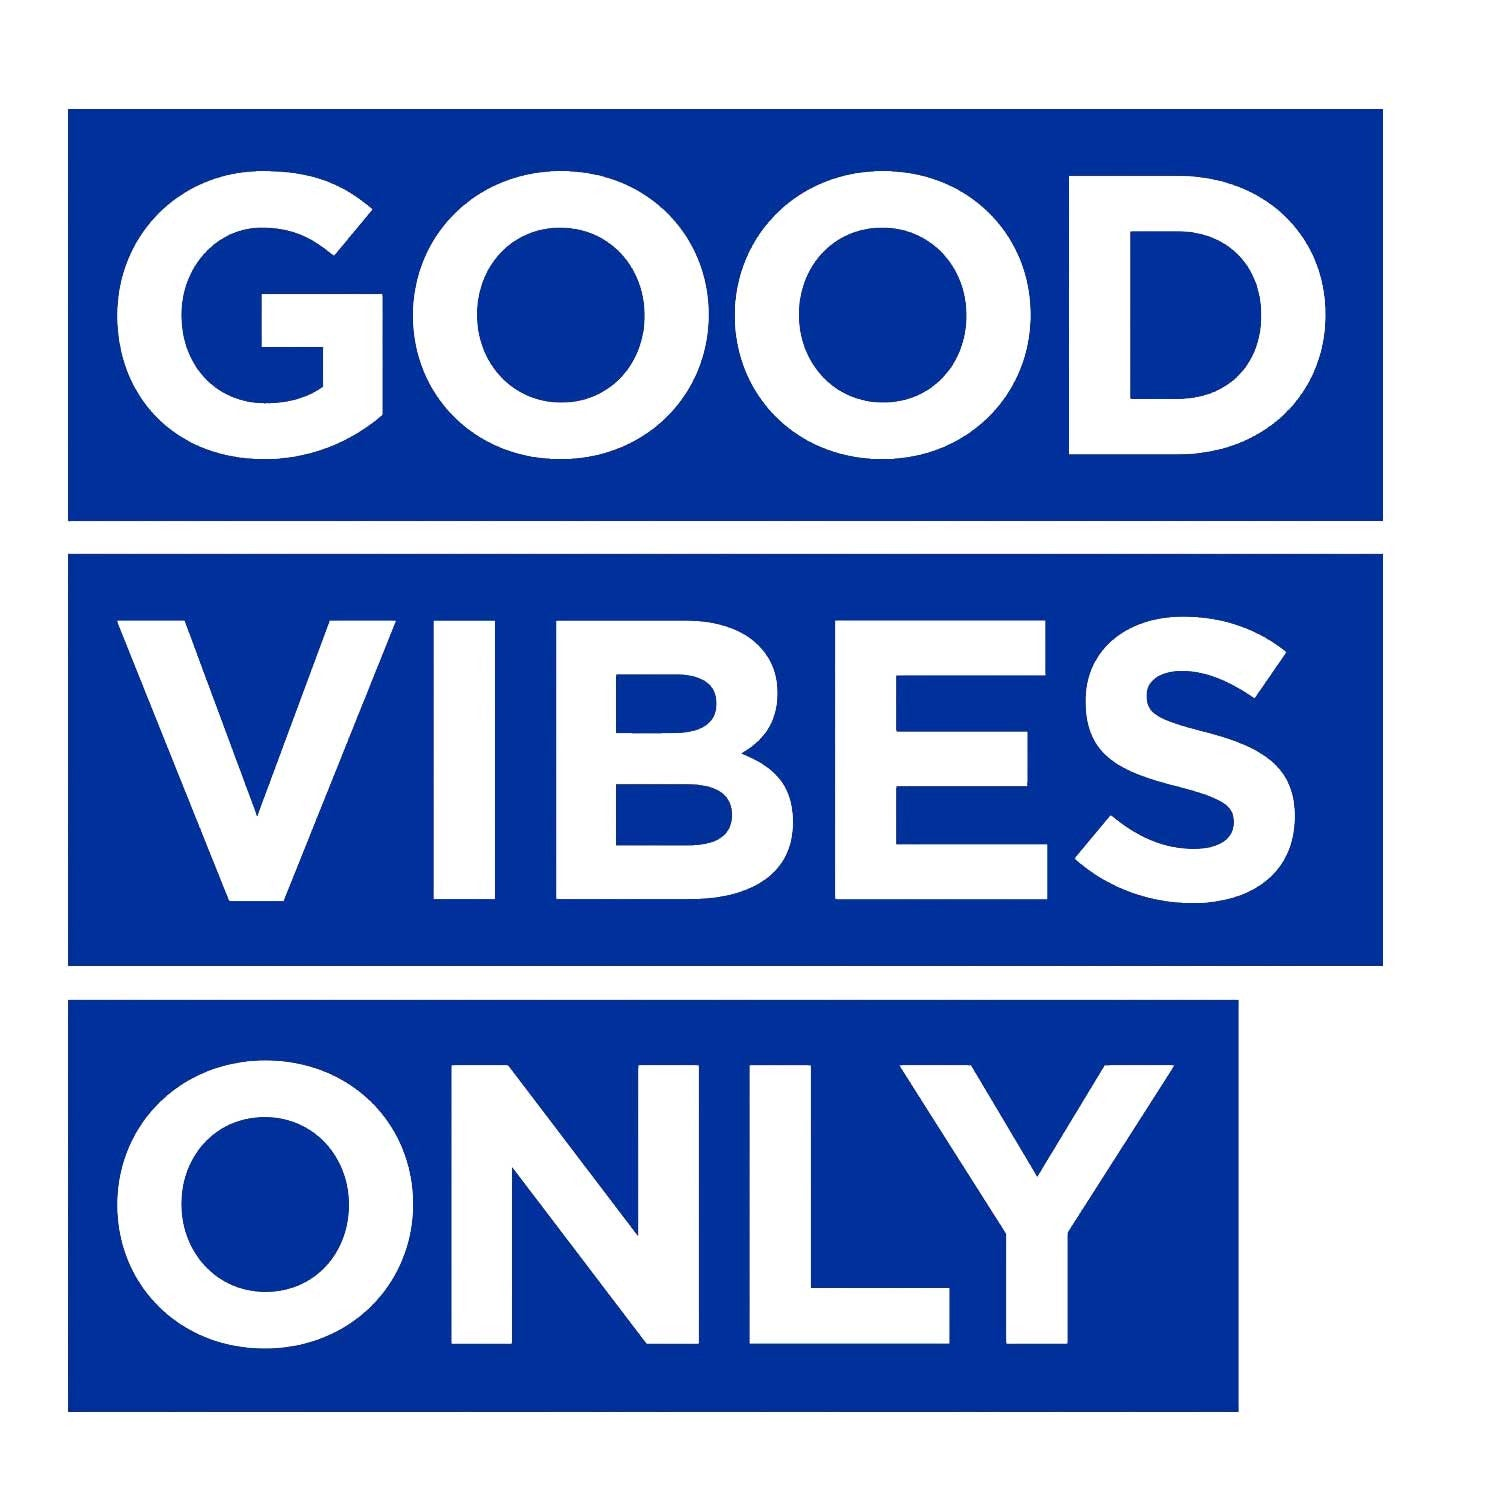 Good Vibes Only Decal - Blue Small